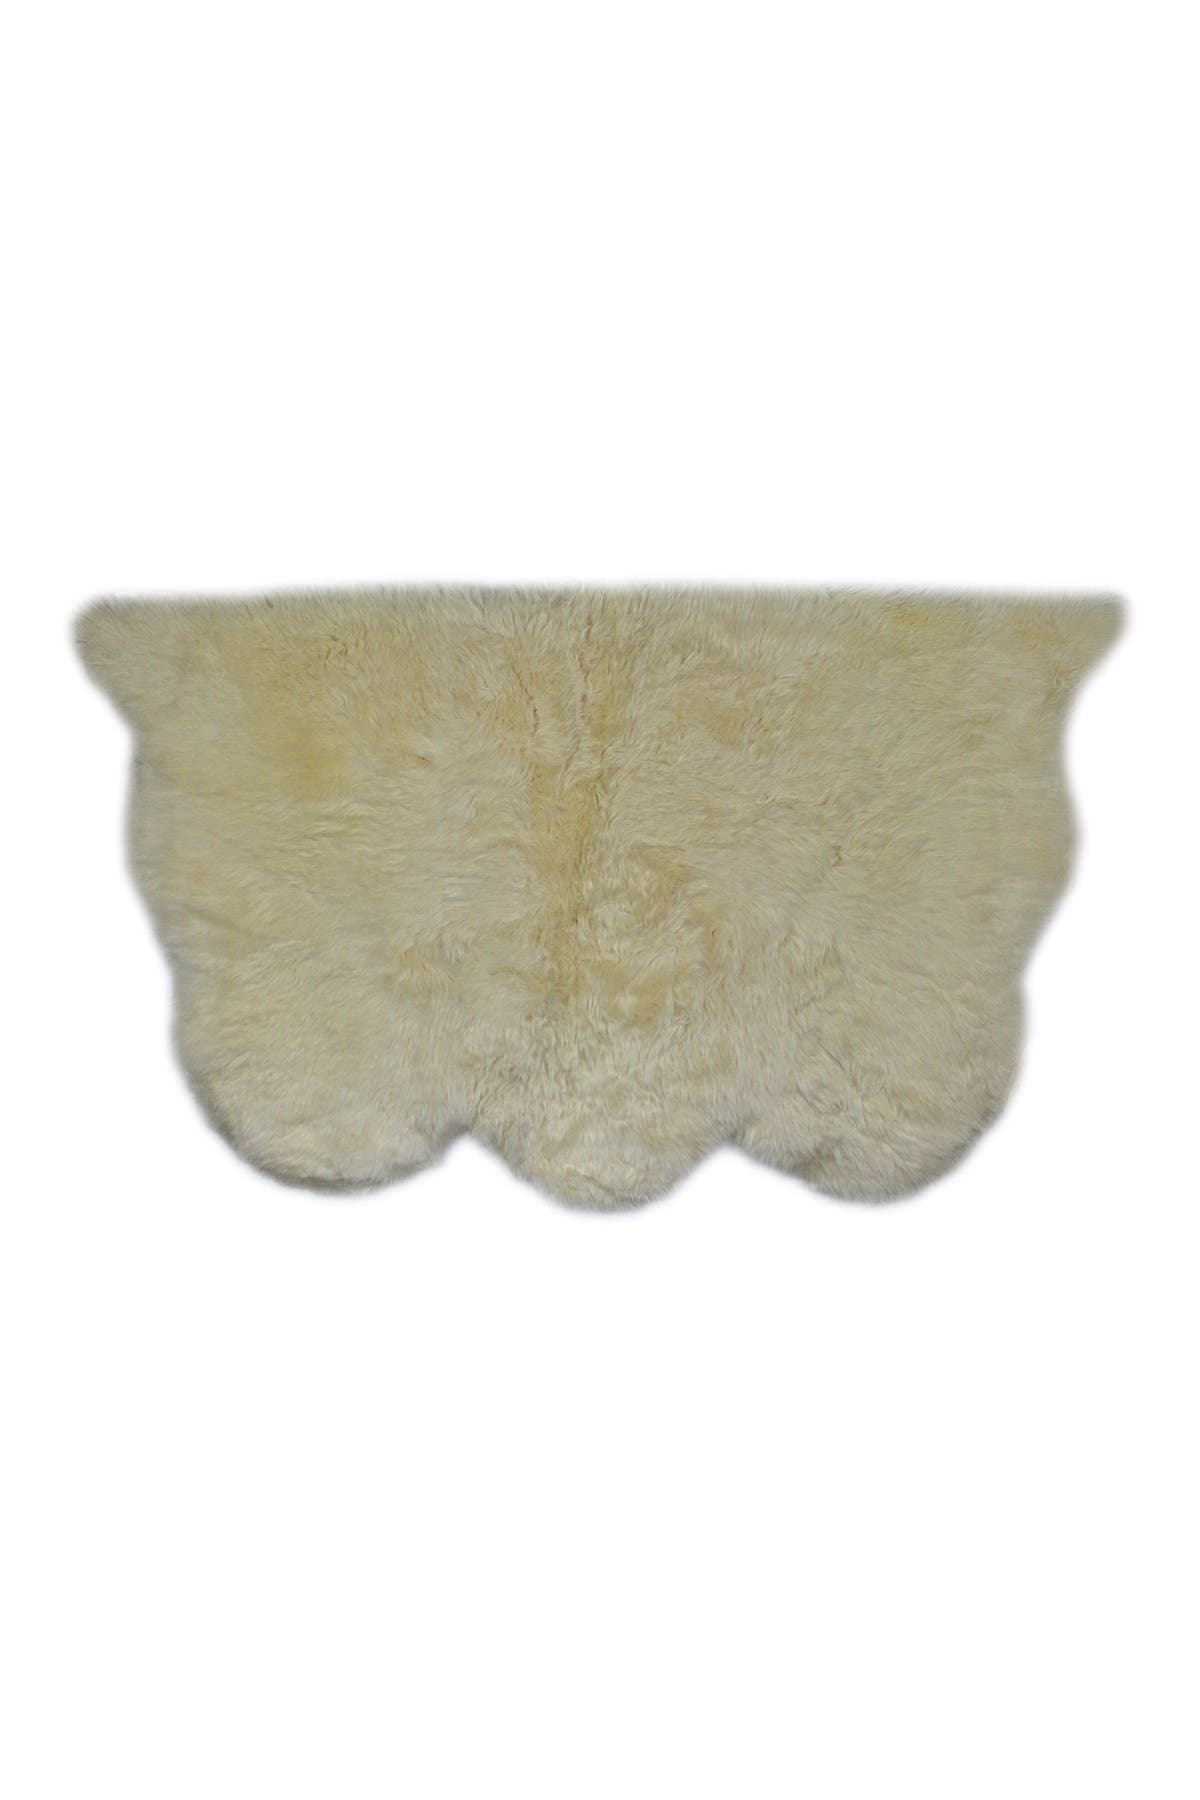 Image of Natural New Zealand Triple Sheepskin Throw - 3ft X 5ft - Gold